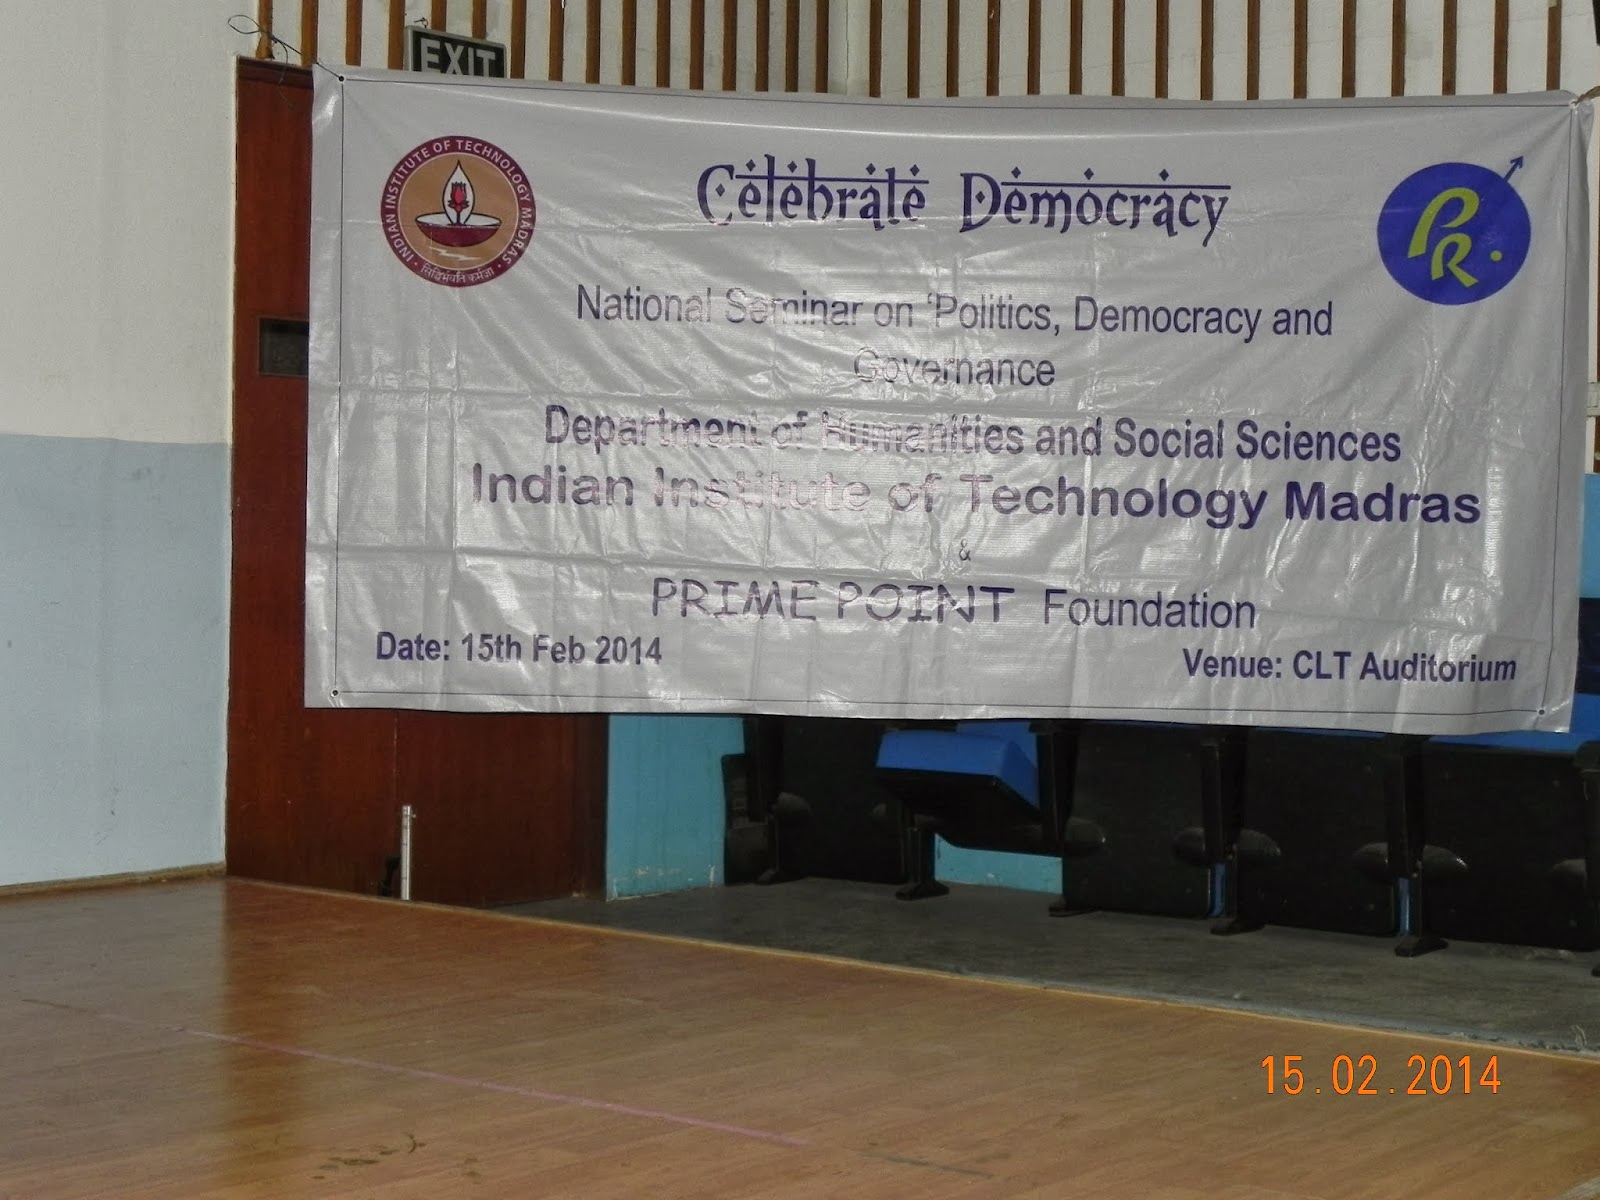 National Seminar on politics, democracy and governance at IIT Madras on 15th Feb 2014 at IIT Madras